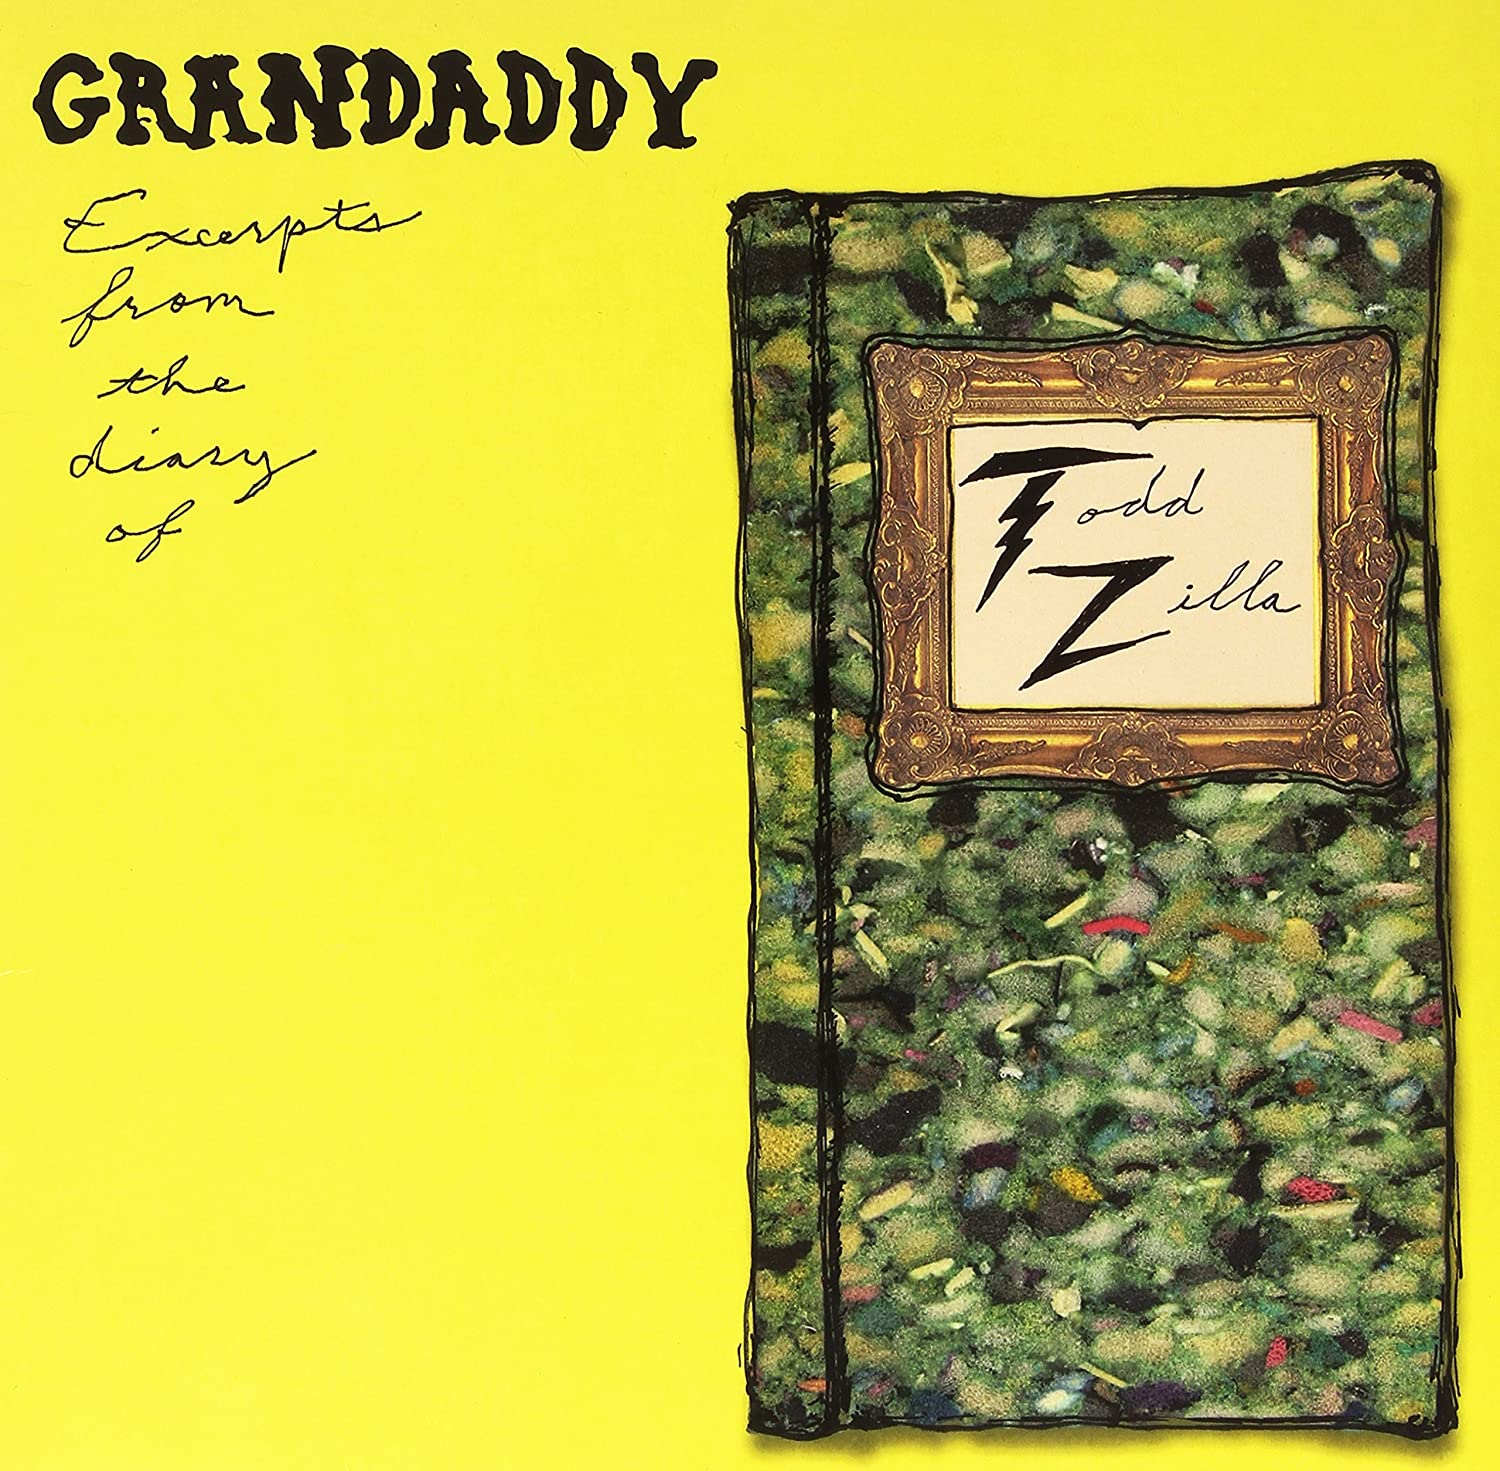 Grandaddy, Excerpts from the Diary of Todd Zilla EP